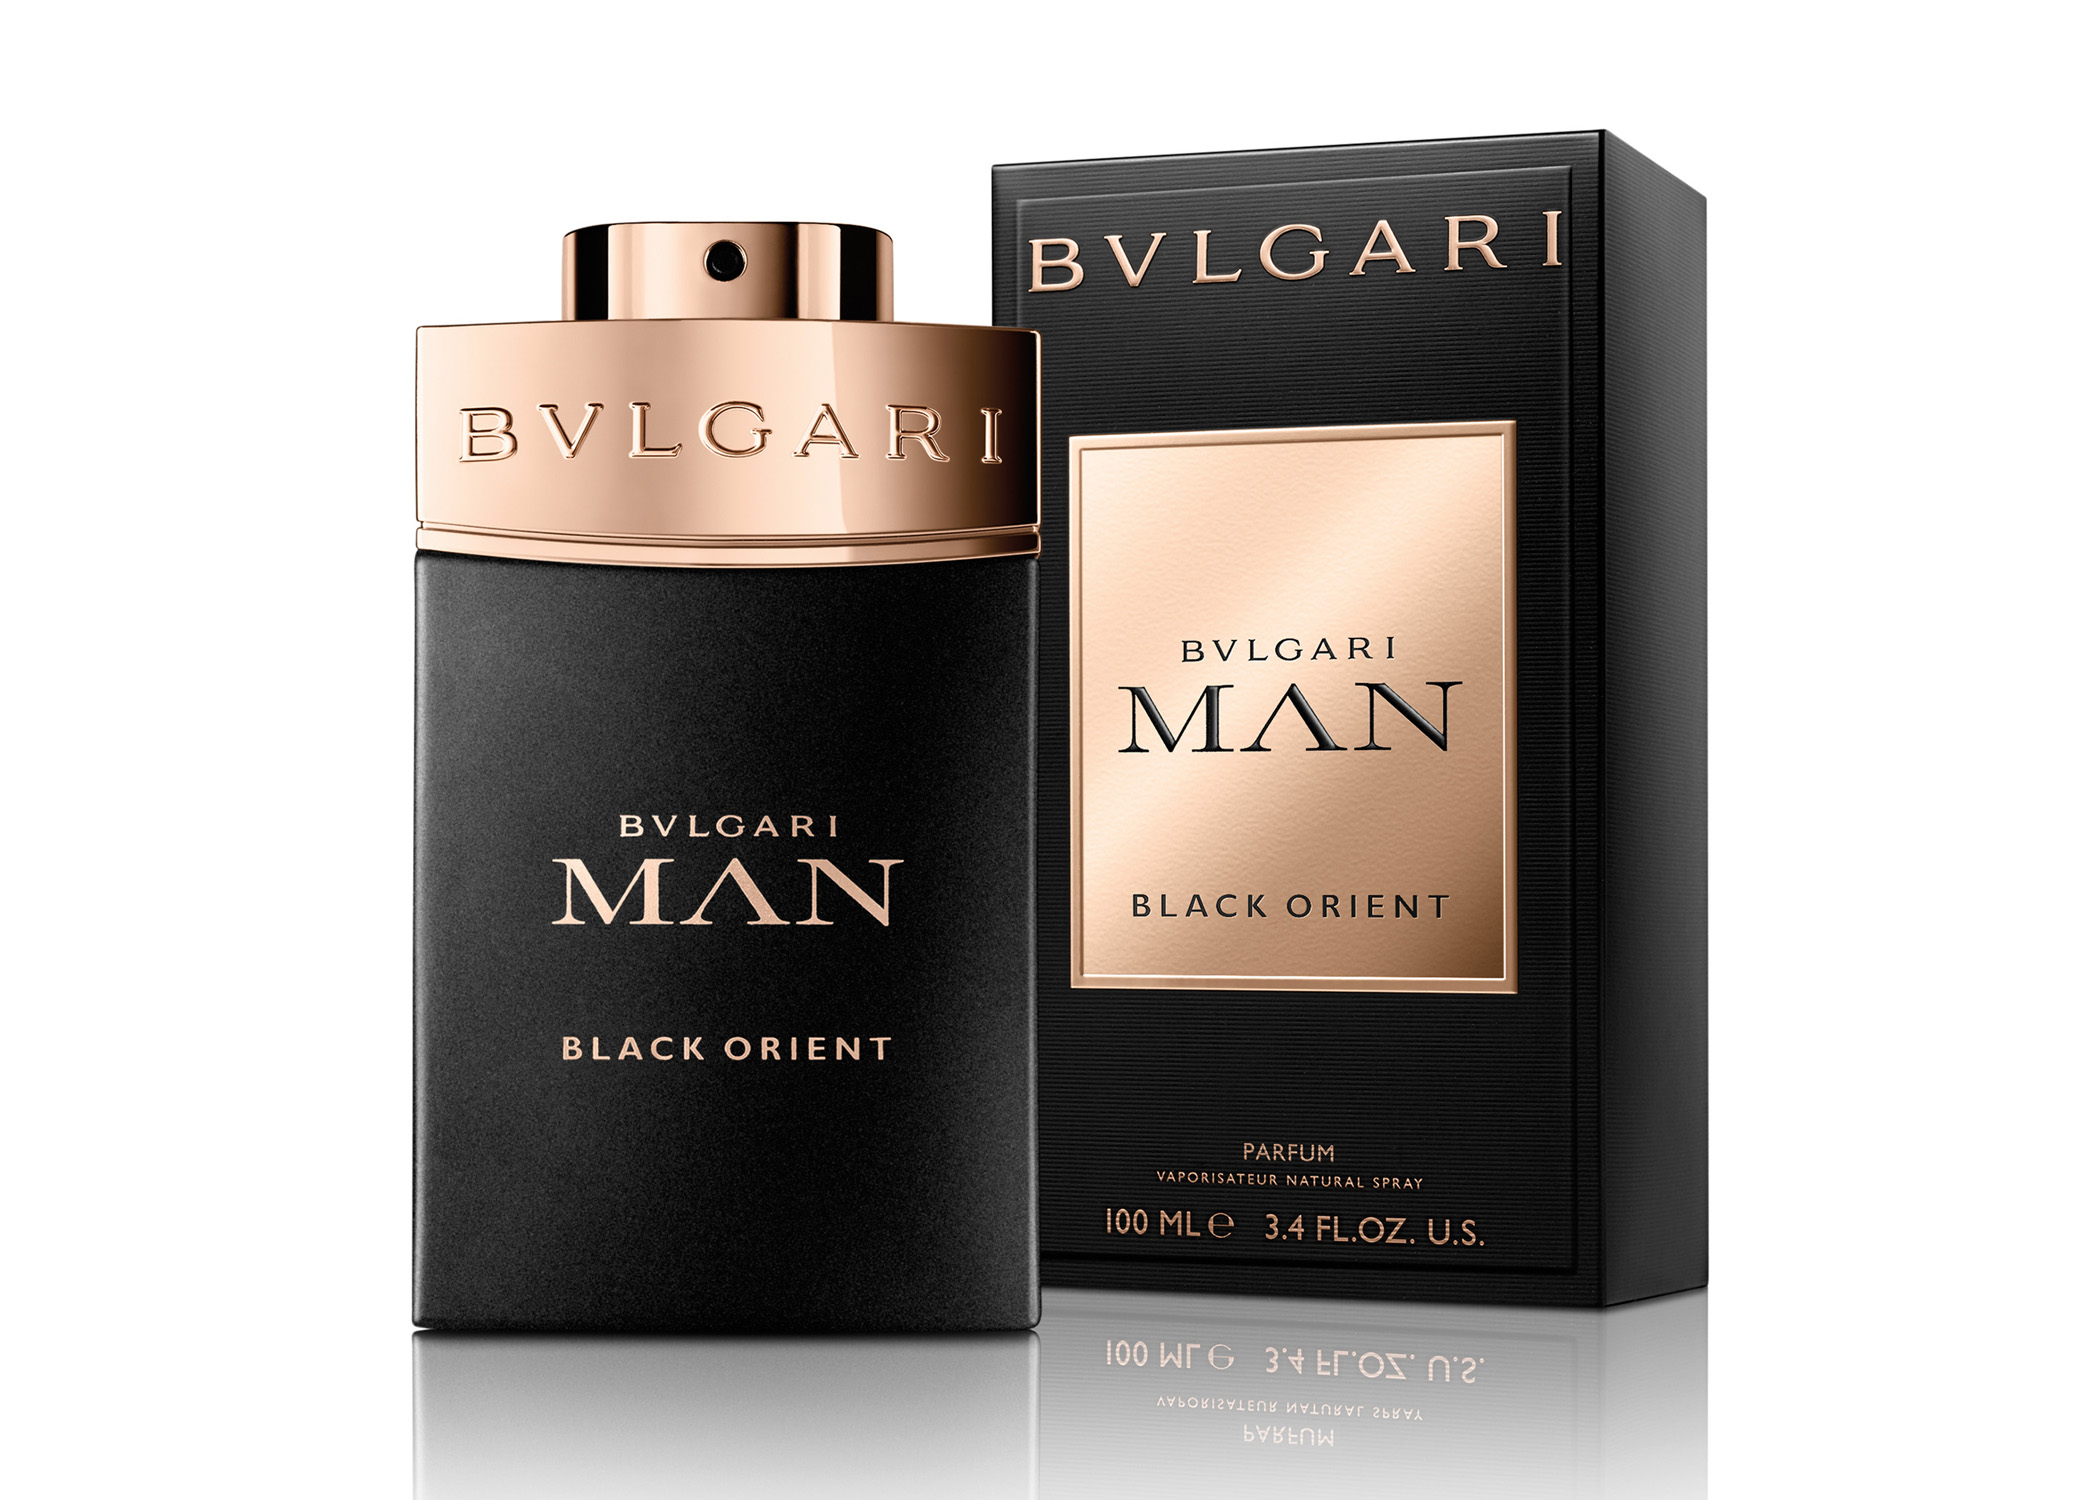 Bvlgari Man Black Orient, Parfum 60ml